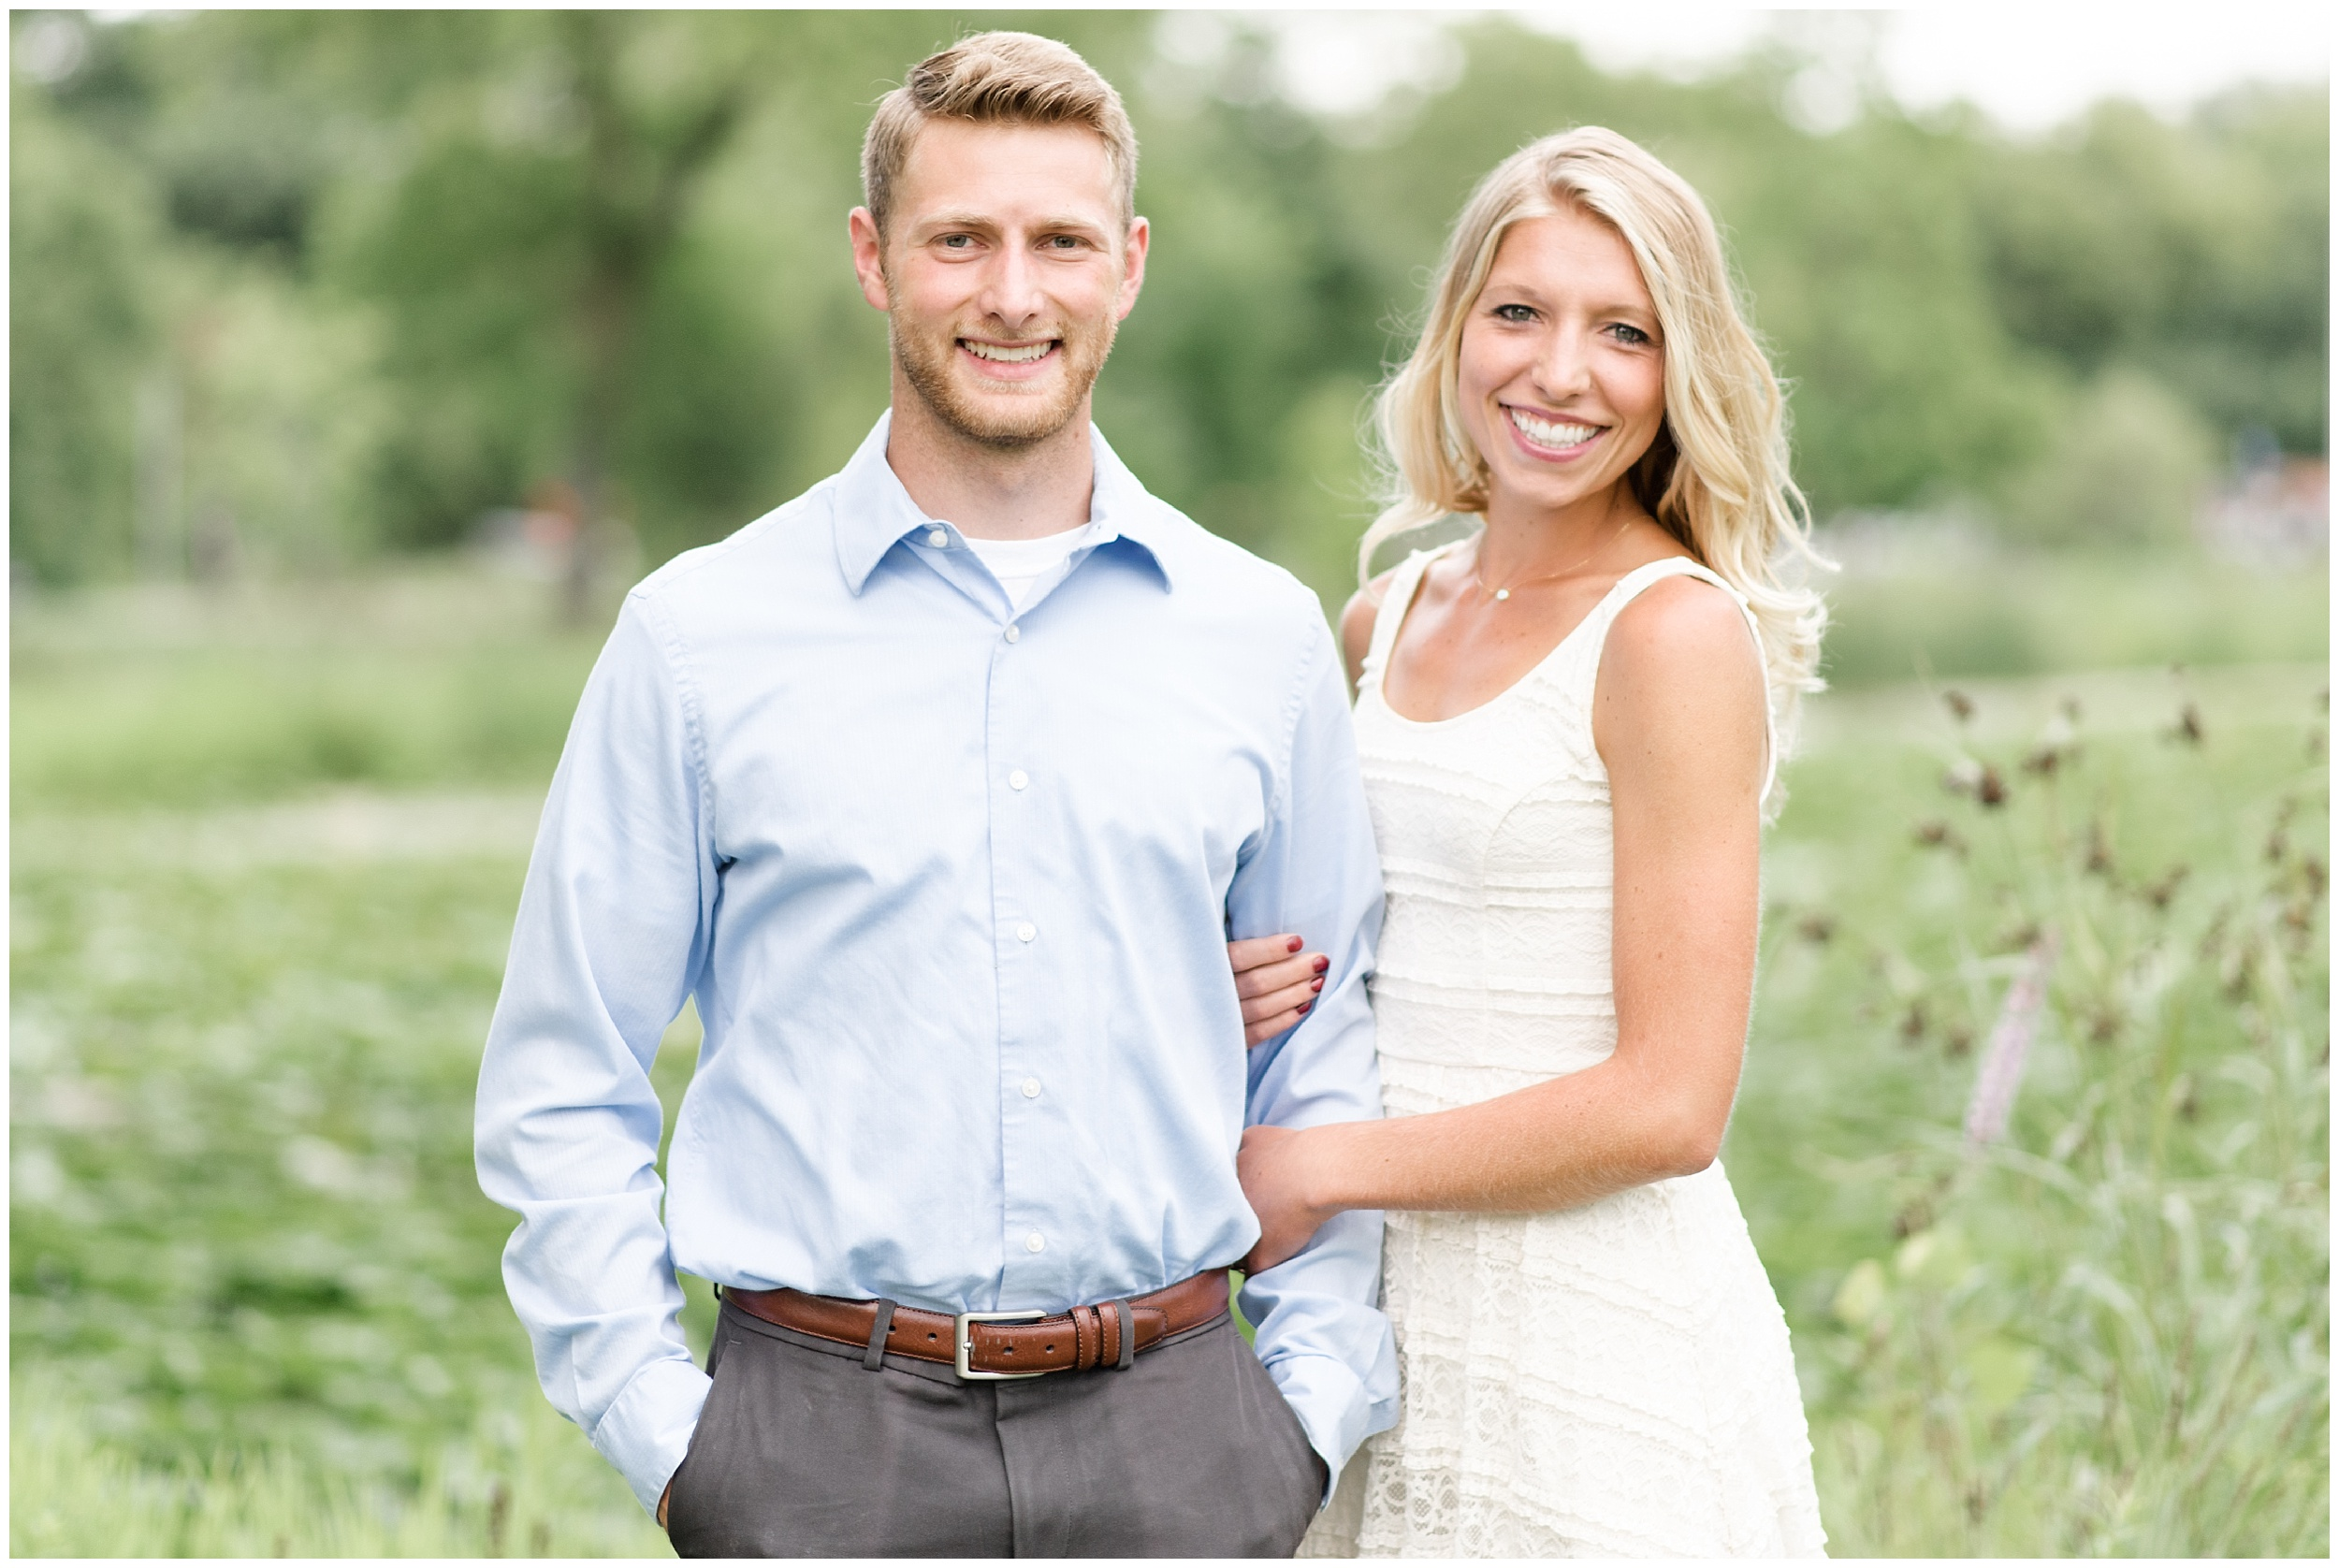 tenney-park-engagement-session-madison-wisconsin-bright-light-airy-wedding-photographer_0005.jpg